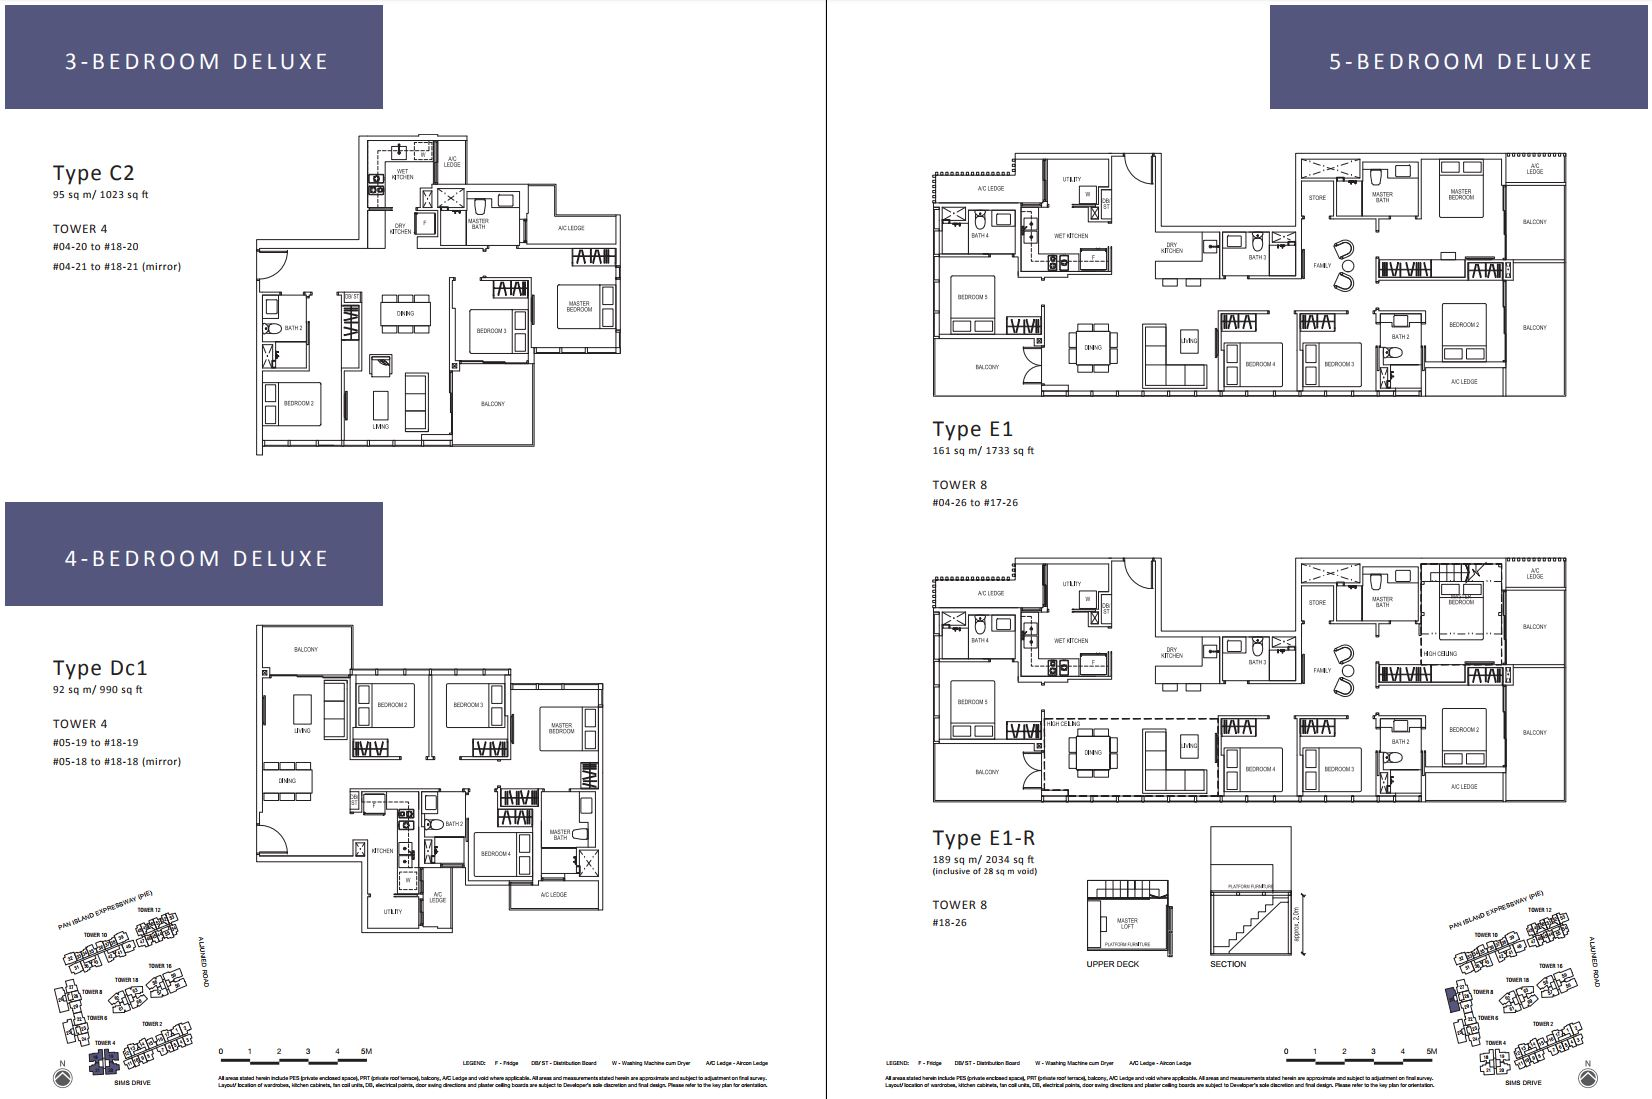 Sims Urban Oasis FloorPlan - 3-5 Bedroom Deluxe